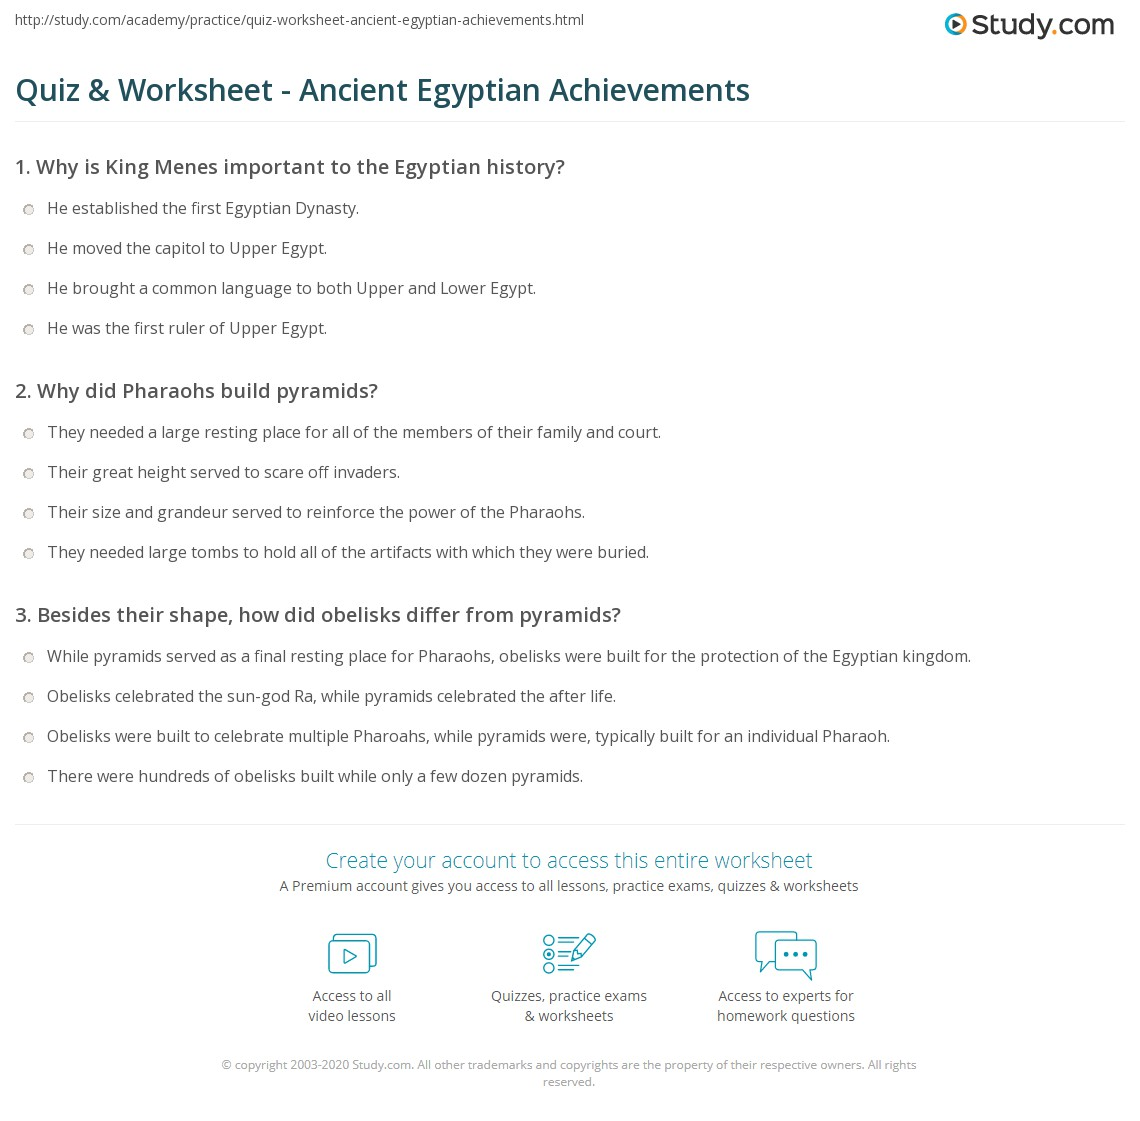 what were the main achievements of the ancient egyptians